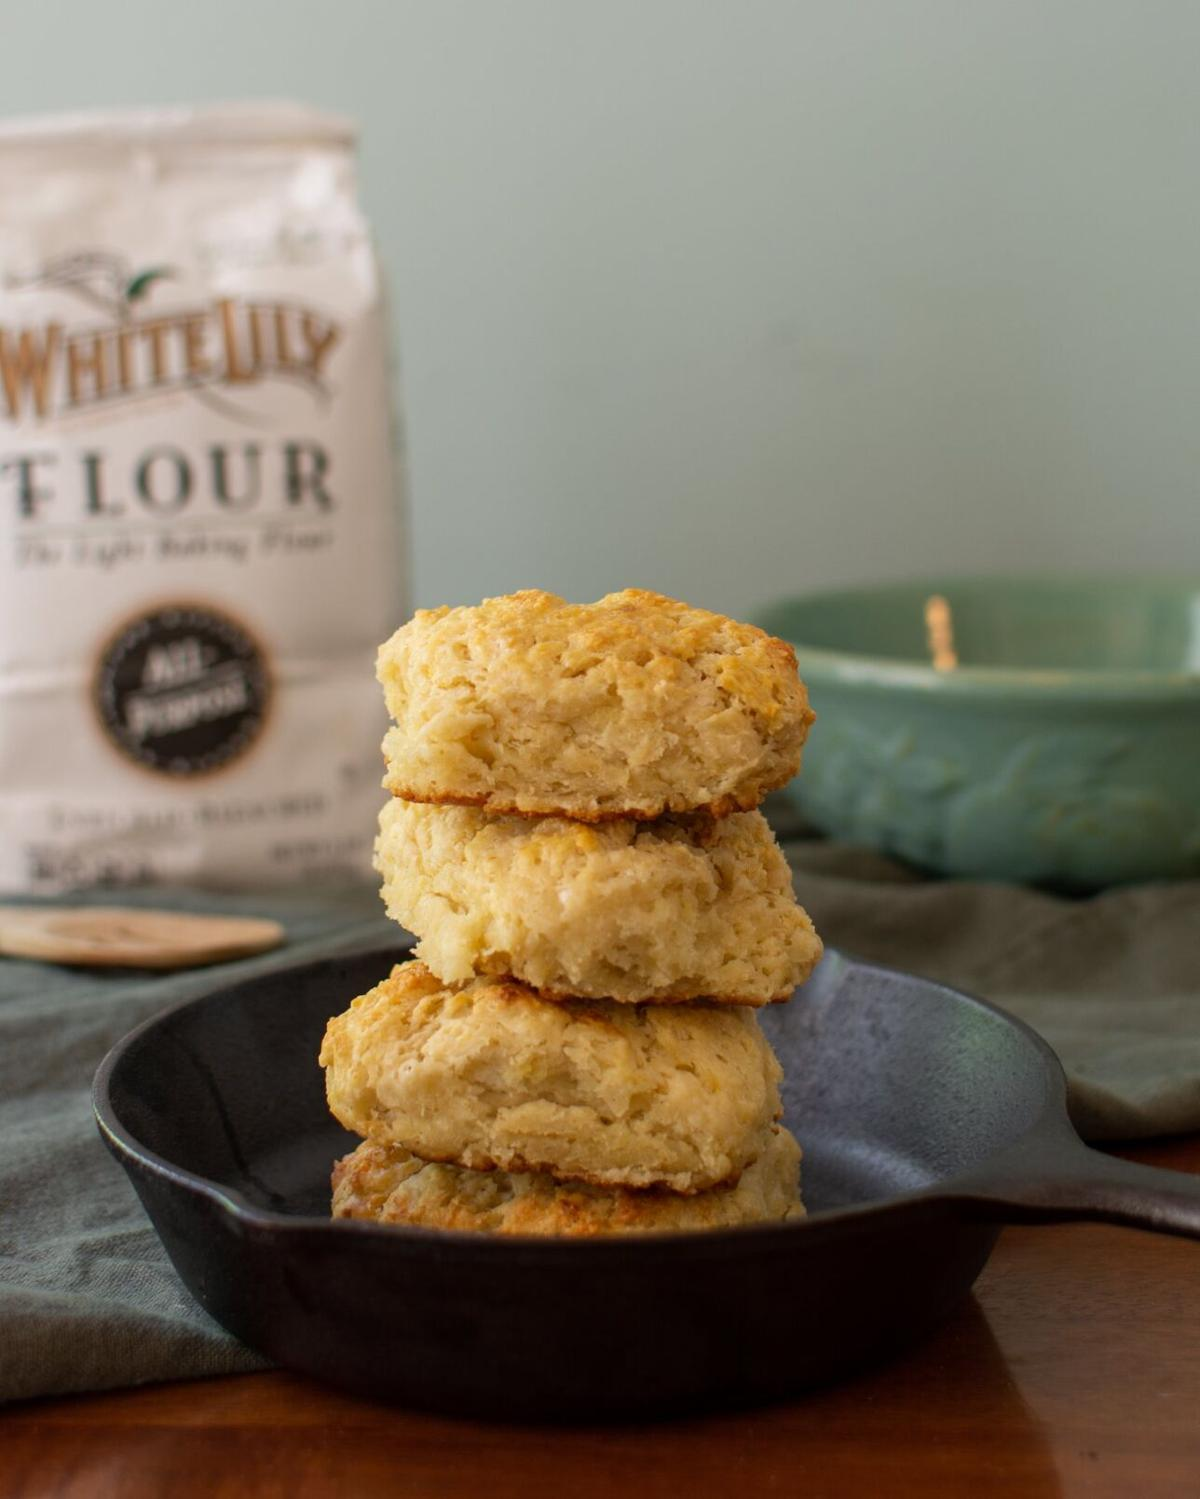 Buford's banking on biscuits buzz